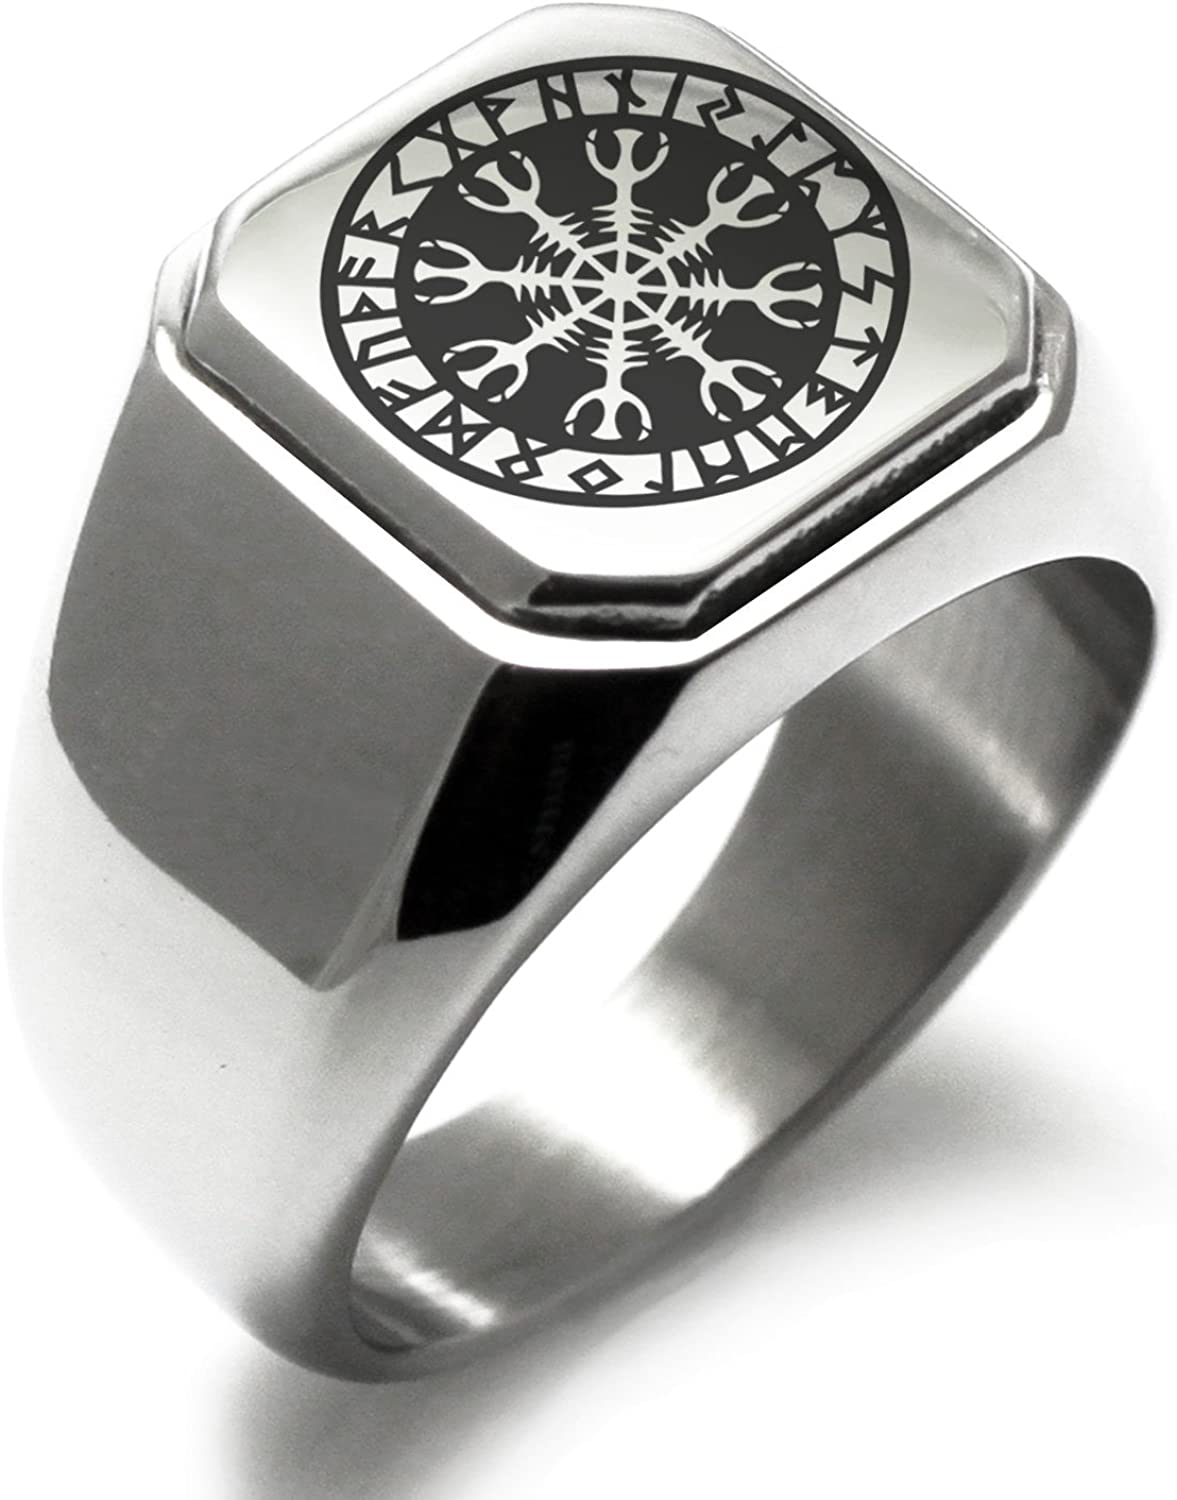 Stainless Steel Helm of Awe Viking Norse Symbol Square Flat Top Biker Style Polished Ring